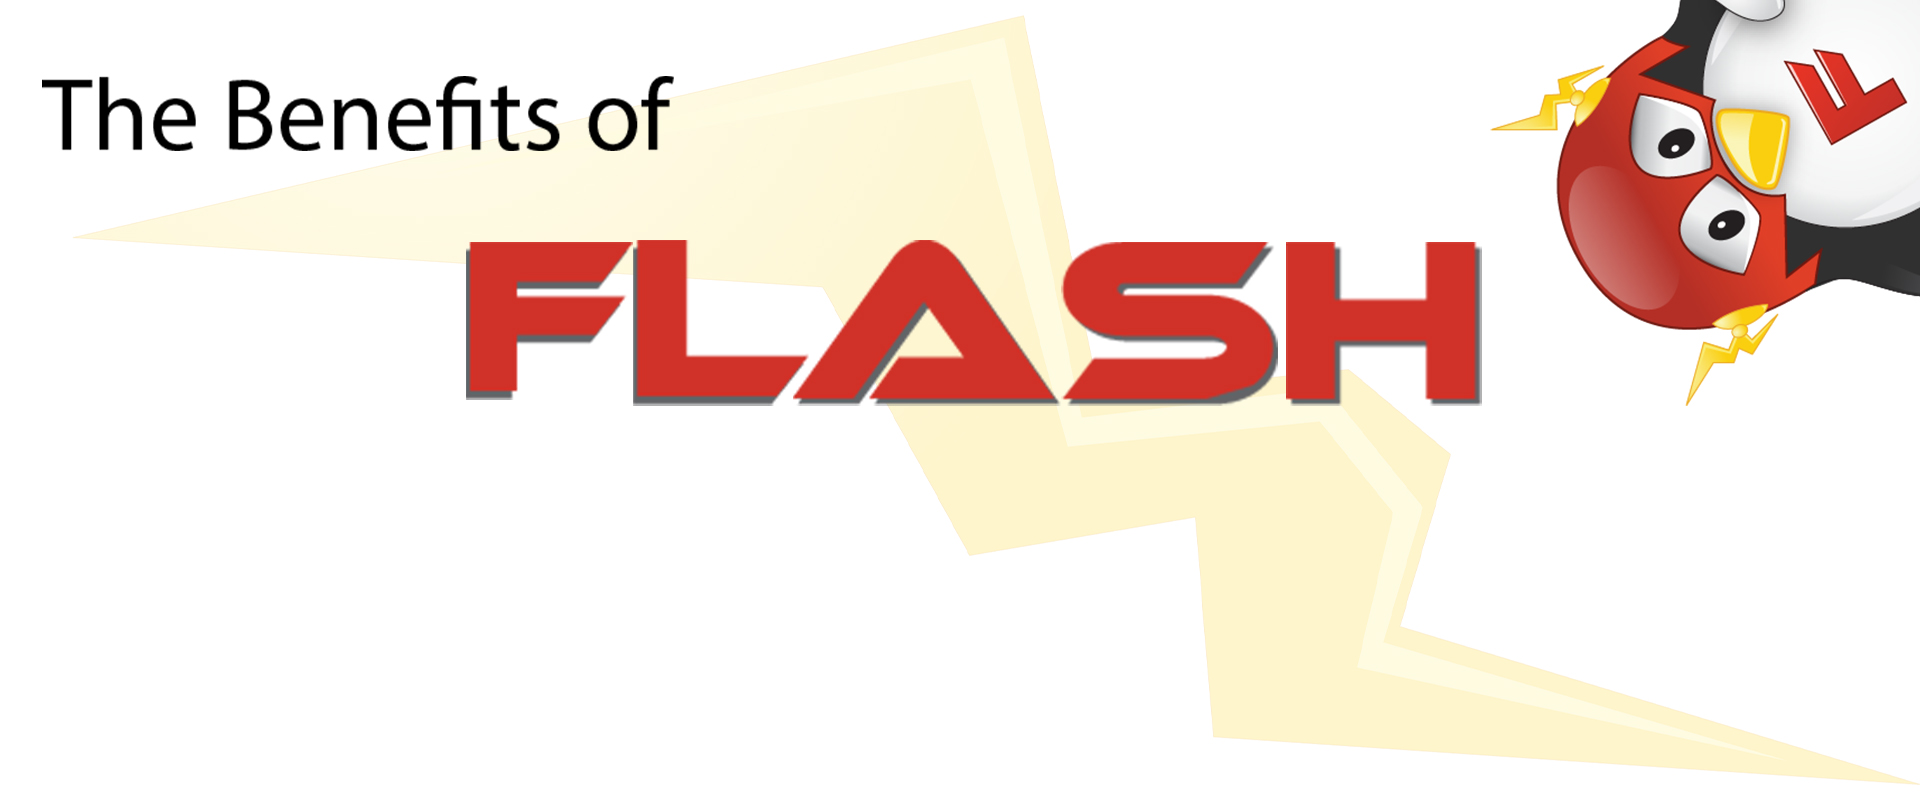 Image: The Benefits of FLASH TG